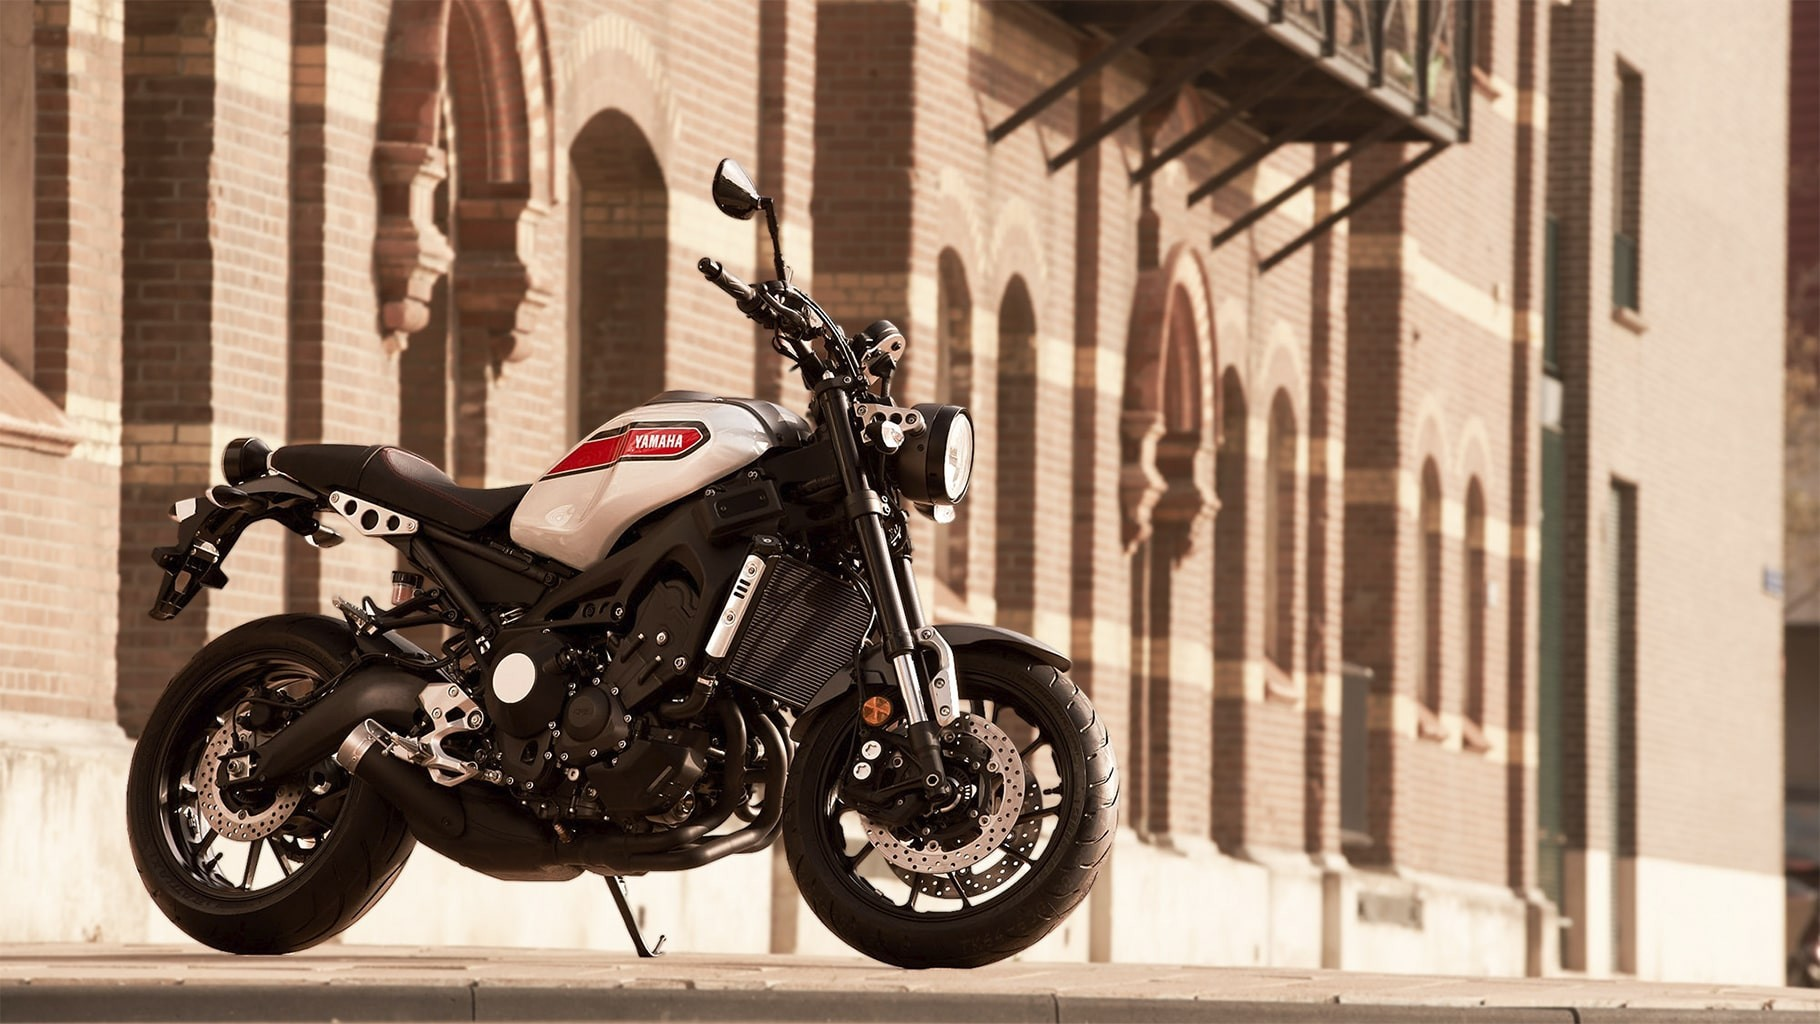 xsr900-matte-gray-aluminum-red-action-11_6gLx